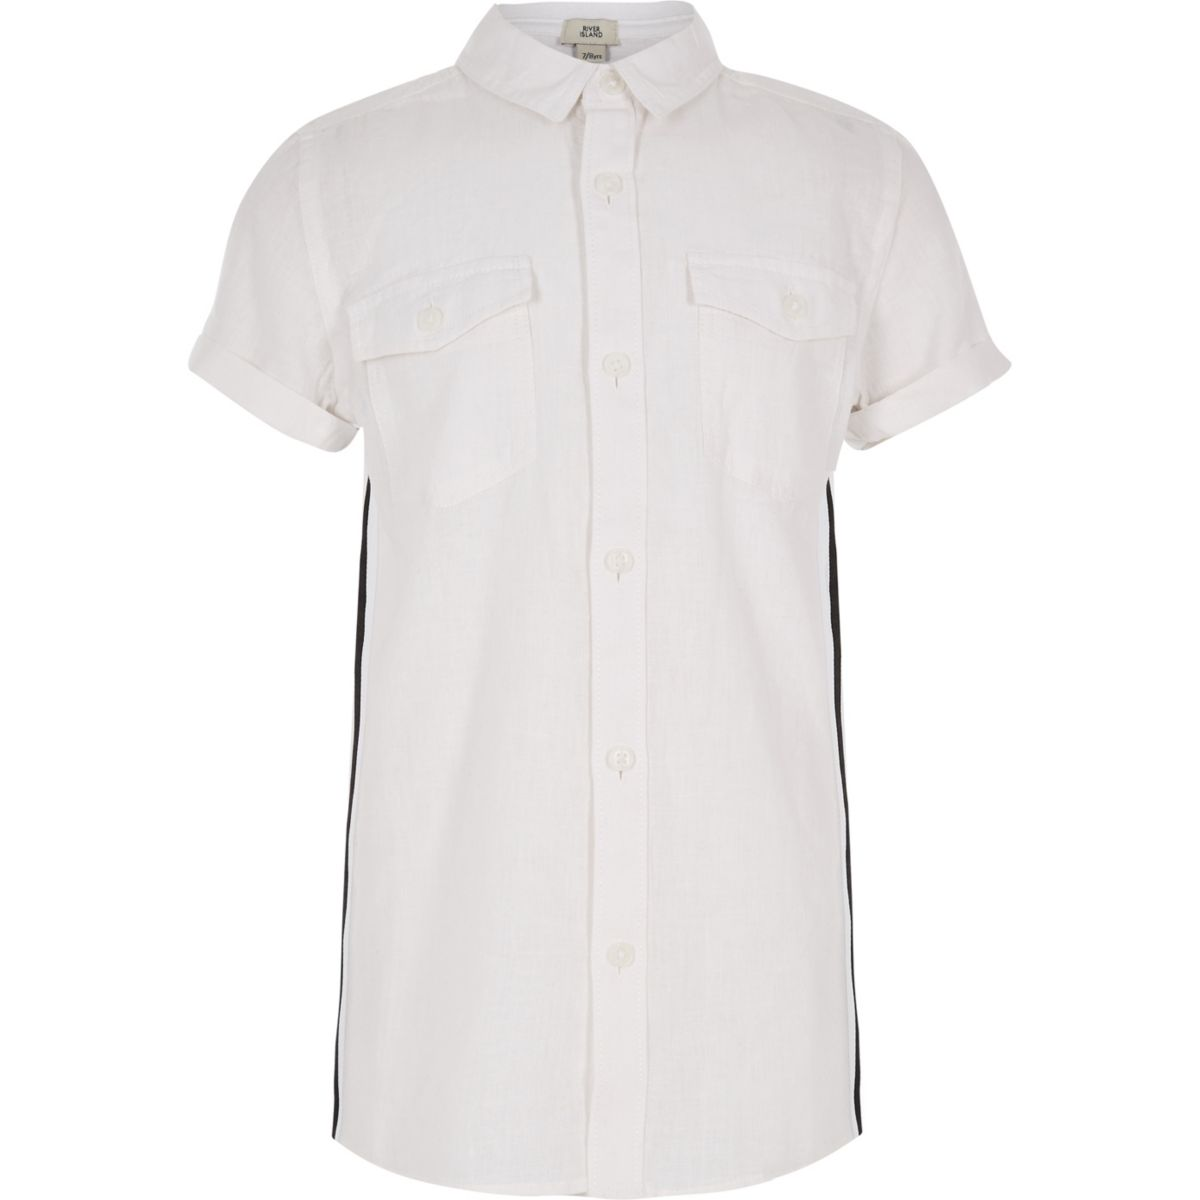 Boys white short sleeve tape shirt